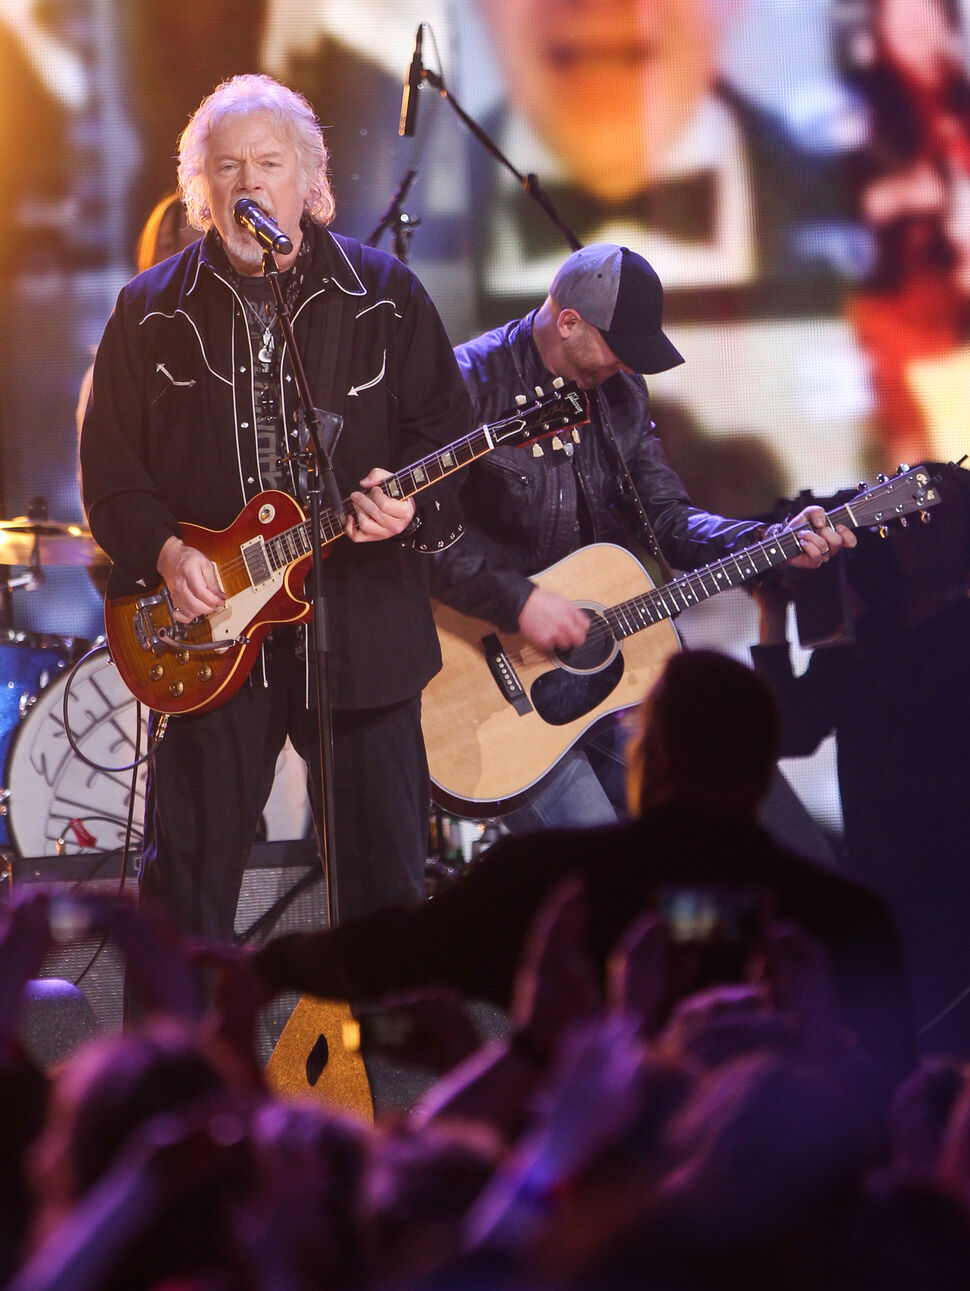 Randy Bachman of BTO closes out the 2014 Juno Awards at MTS Centre in Winnipeg. (Joe Bryksa / Winnipeg Free Press)